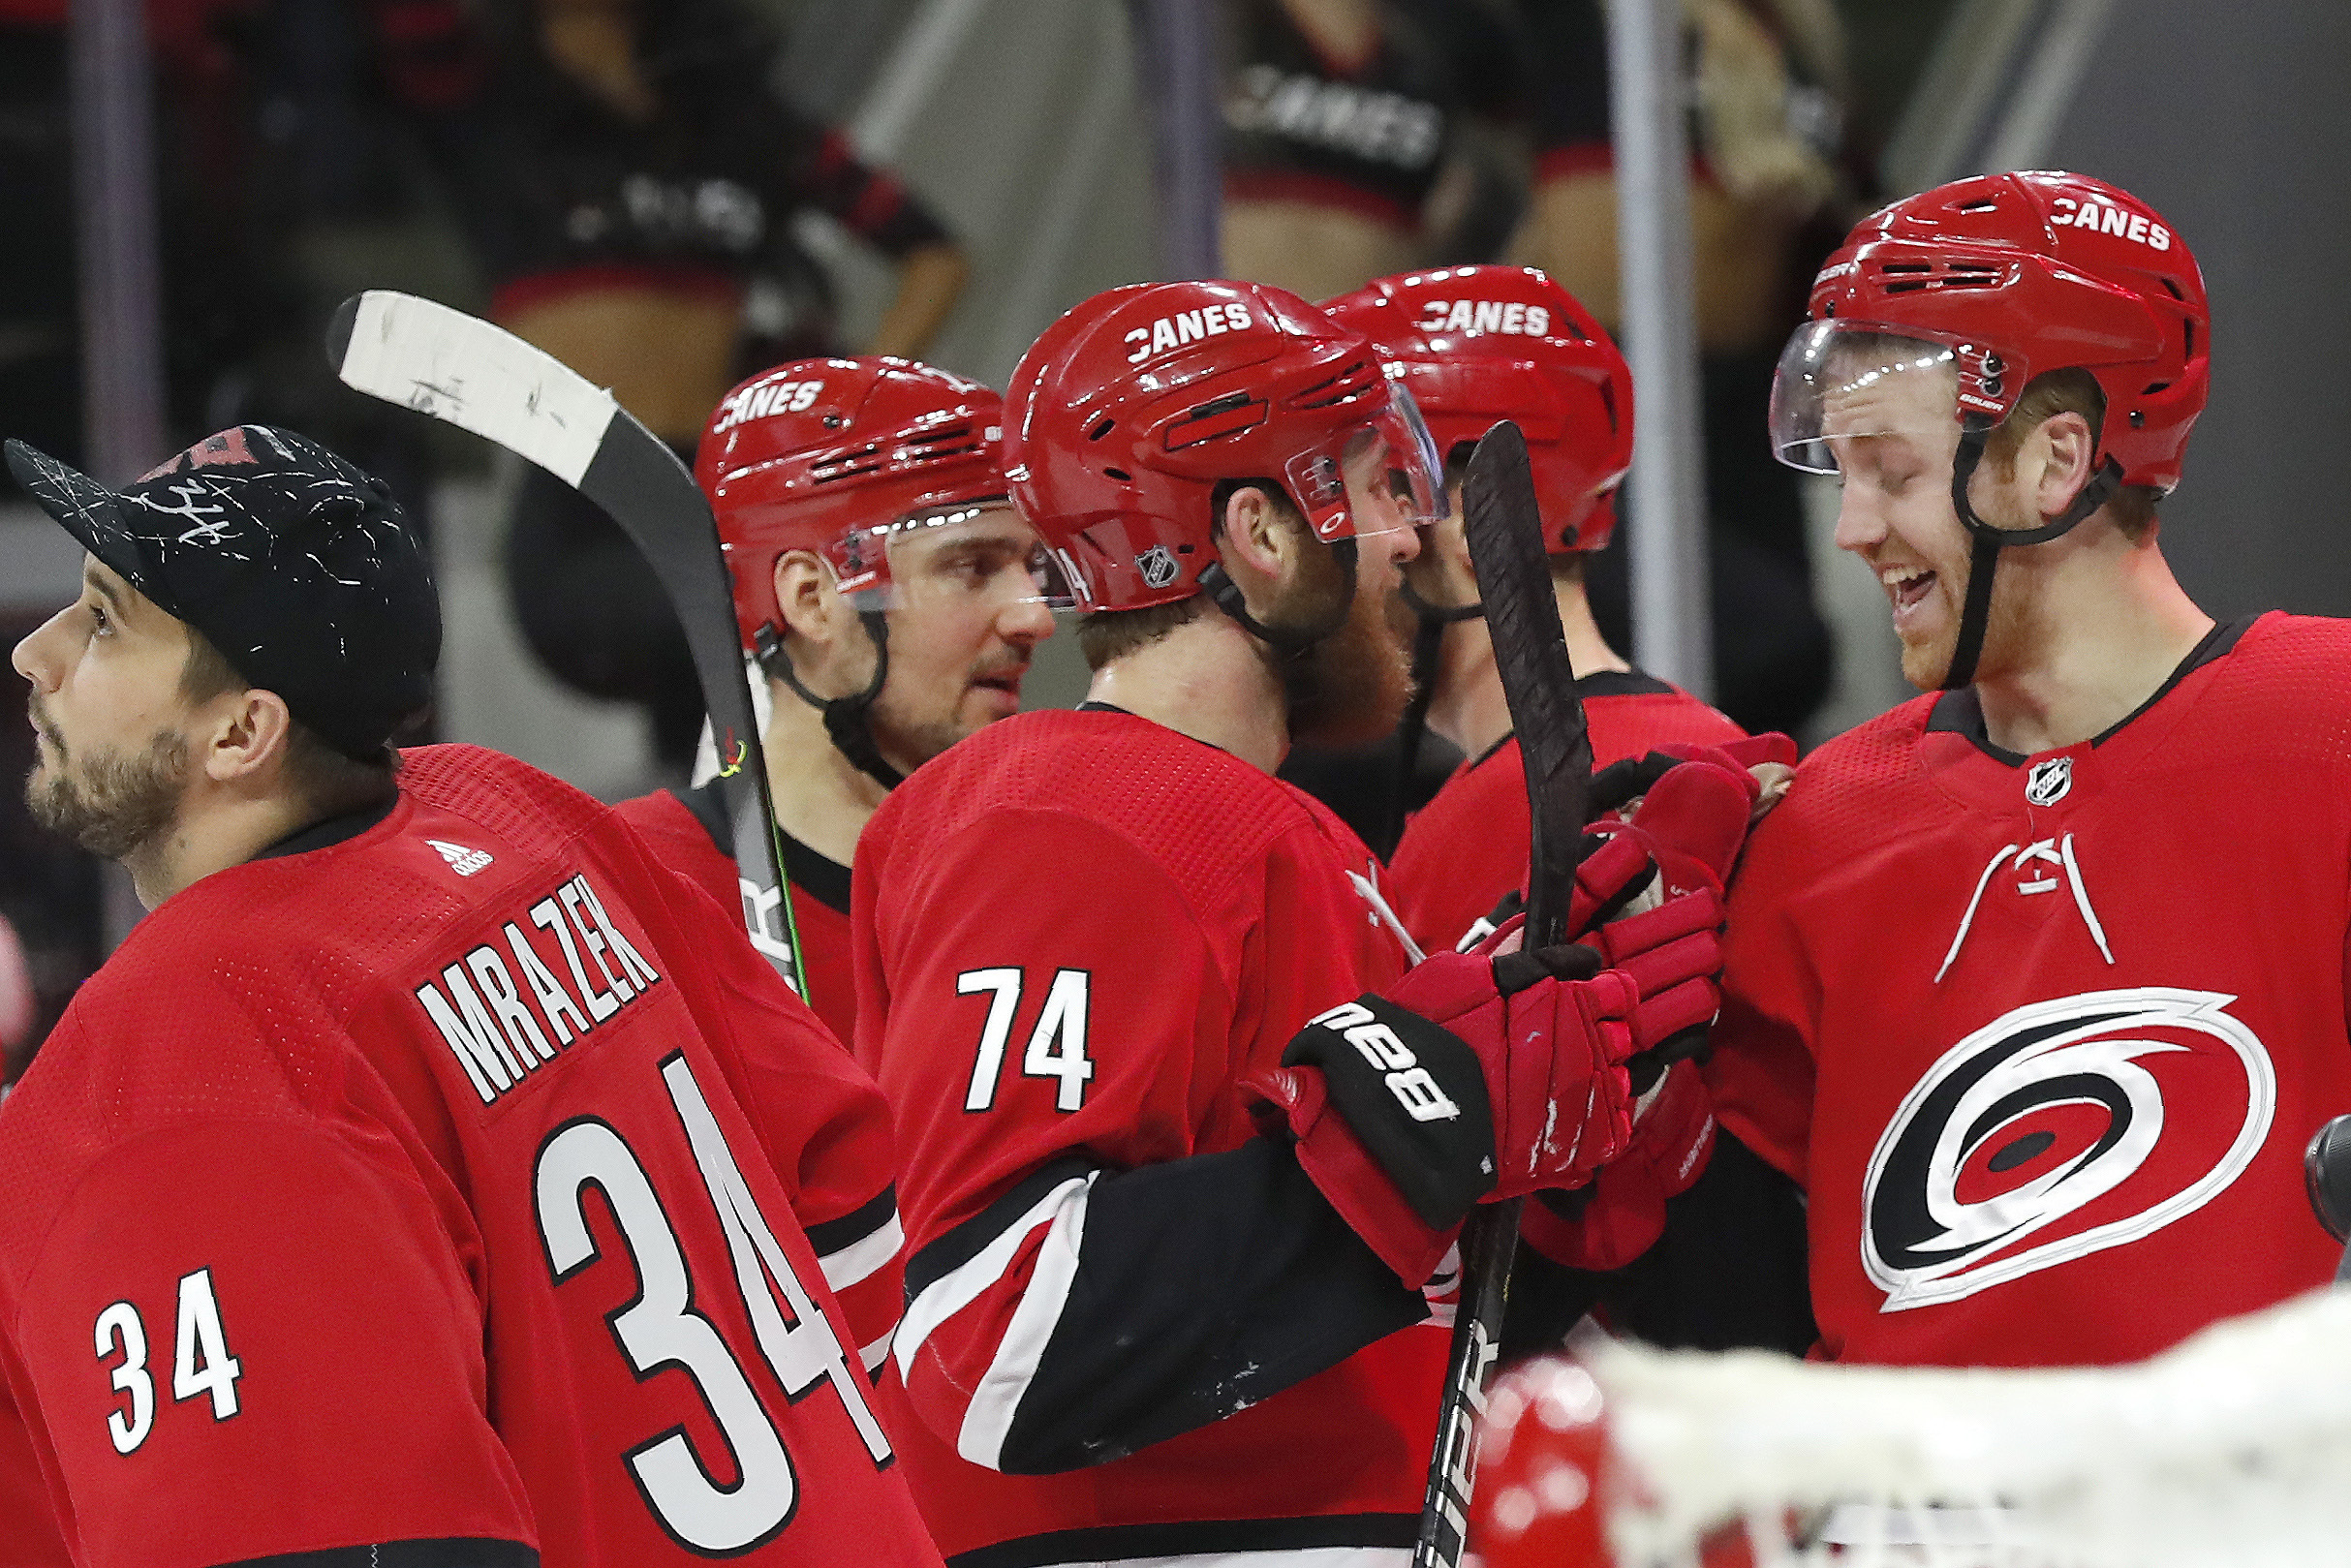 Hurricanes beat Flyers in OT, bring back Justin Williams